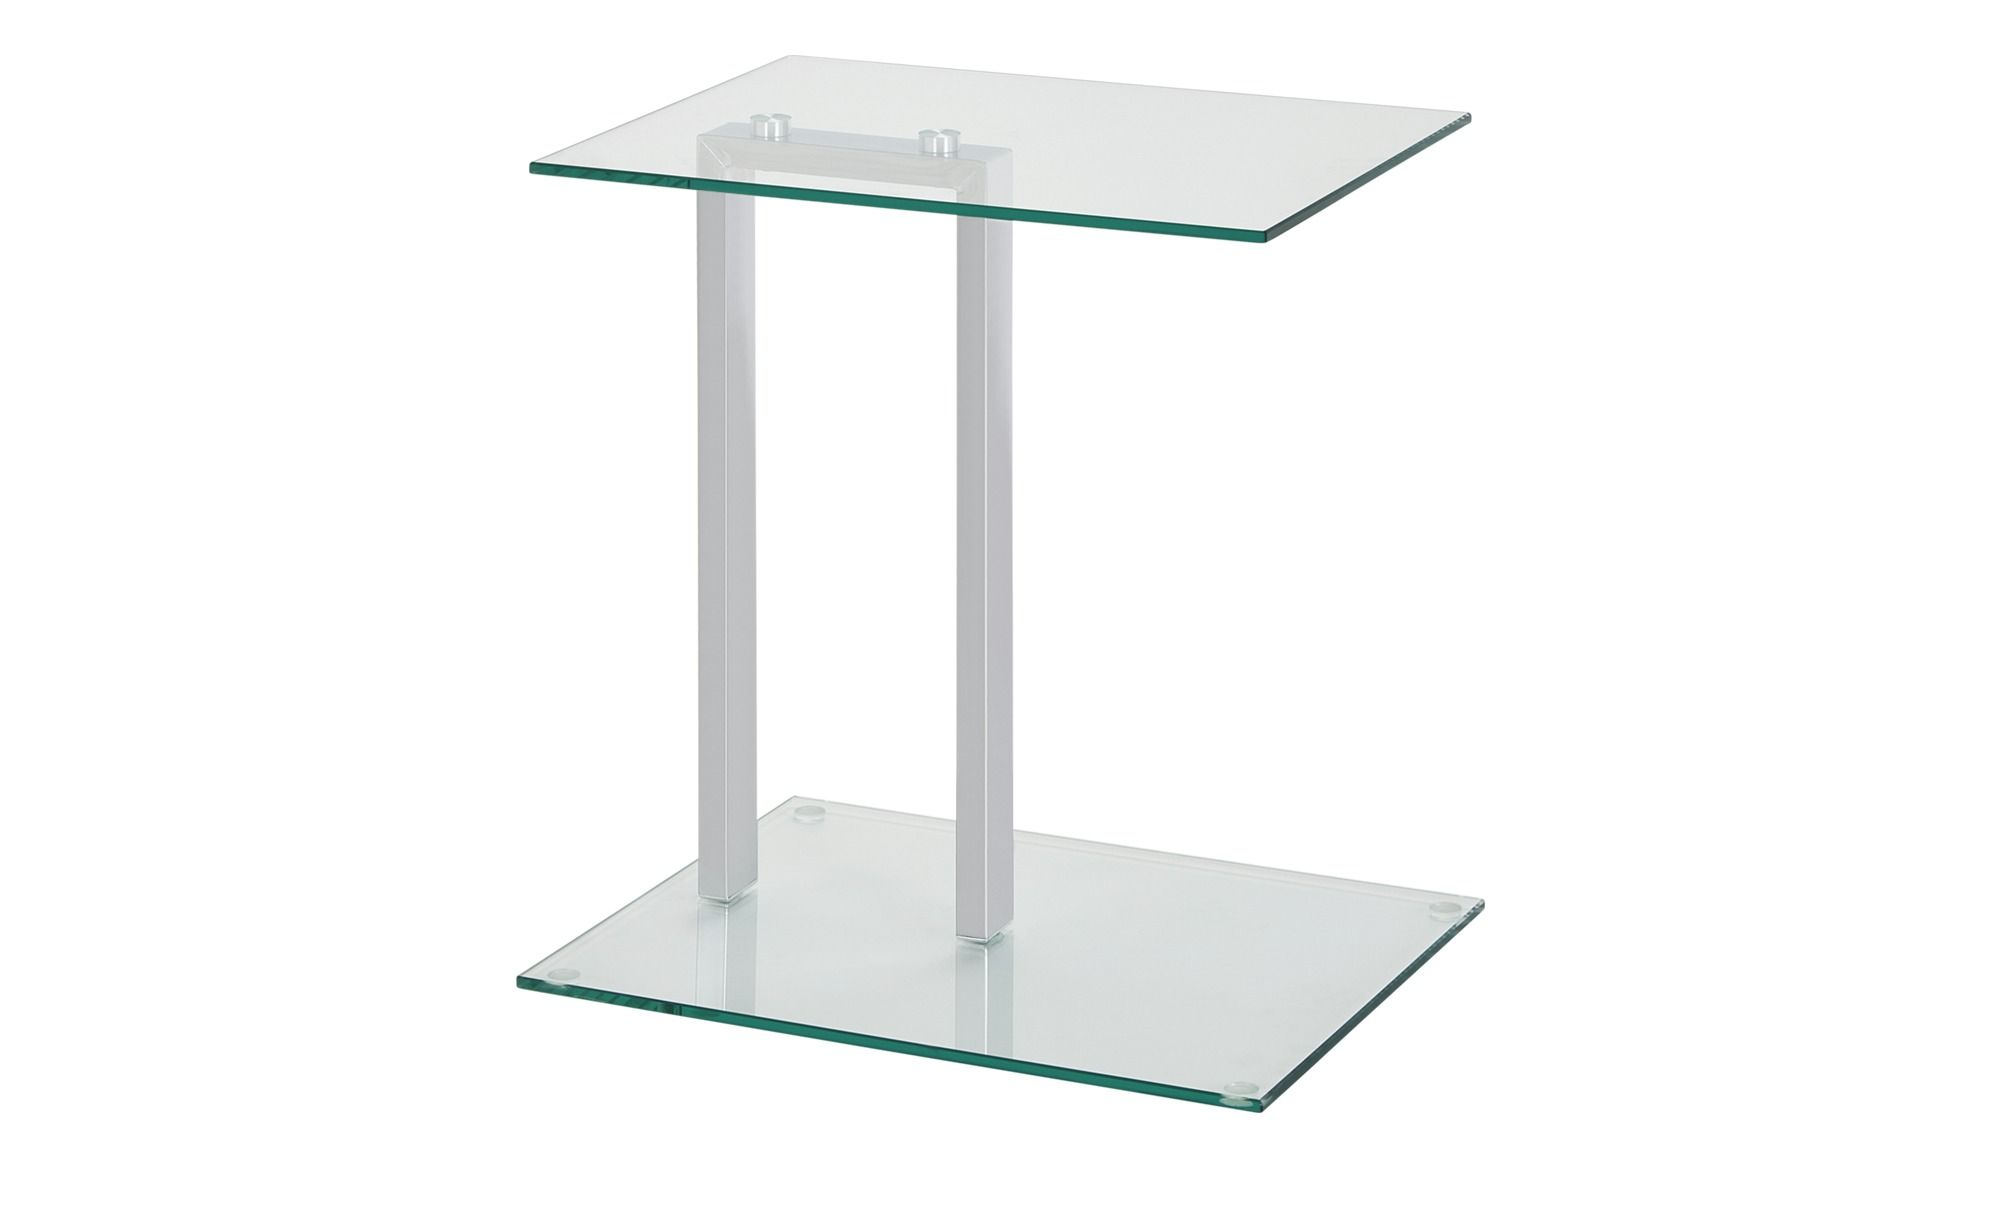 Tisch 40x40 Pin By Ladendirekt On Tische Table Furniture Table End Tables